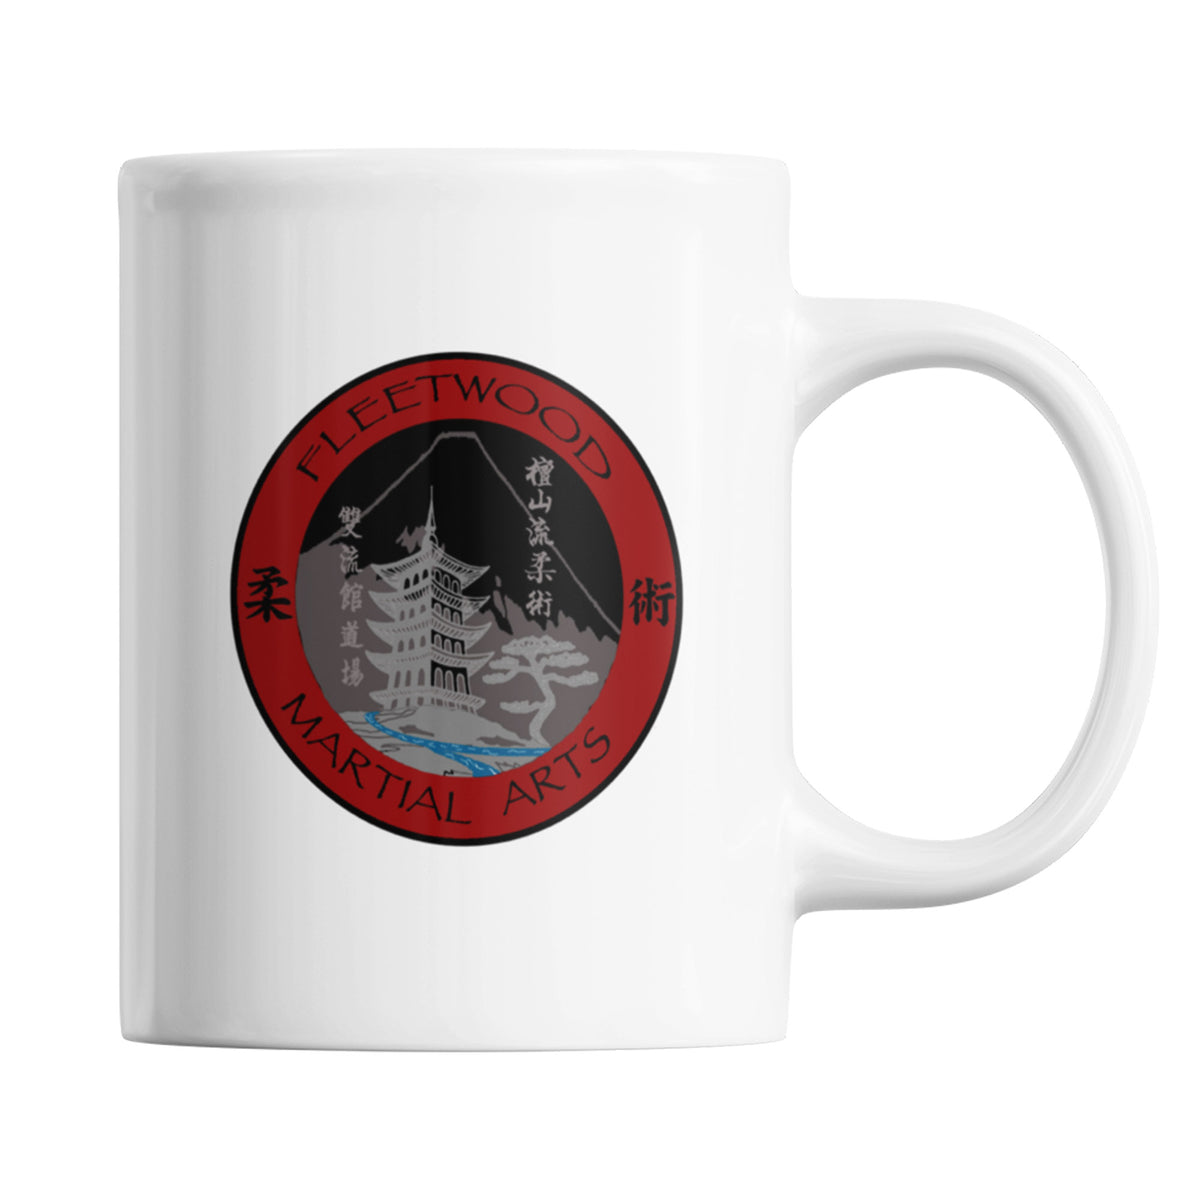 Fleetwood Martial Arts We Support PA Coffee Mug